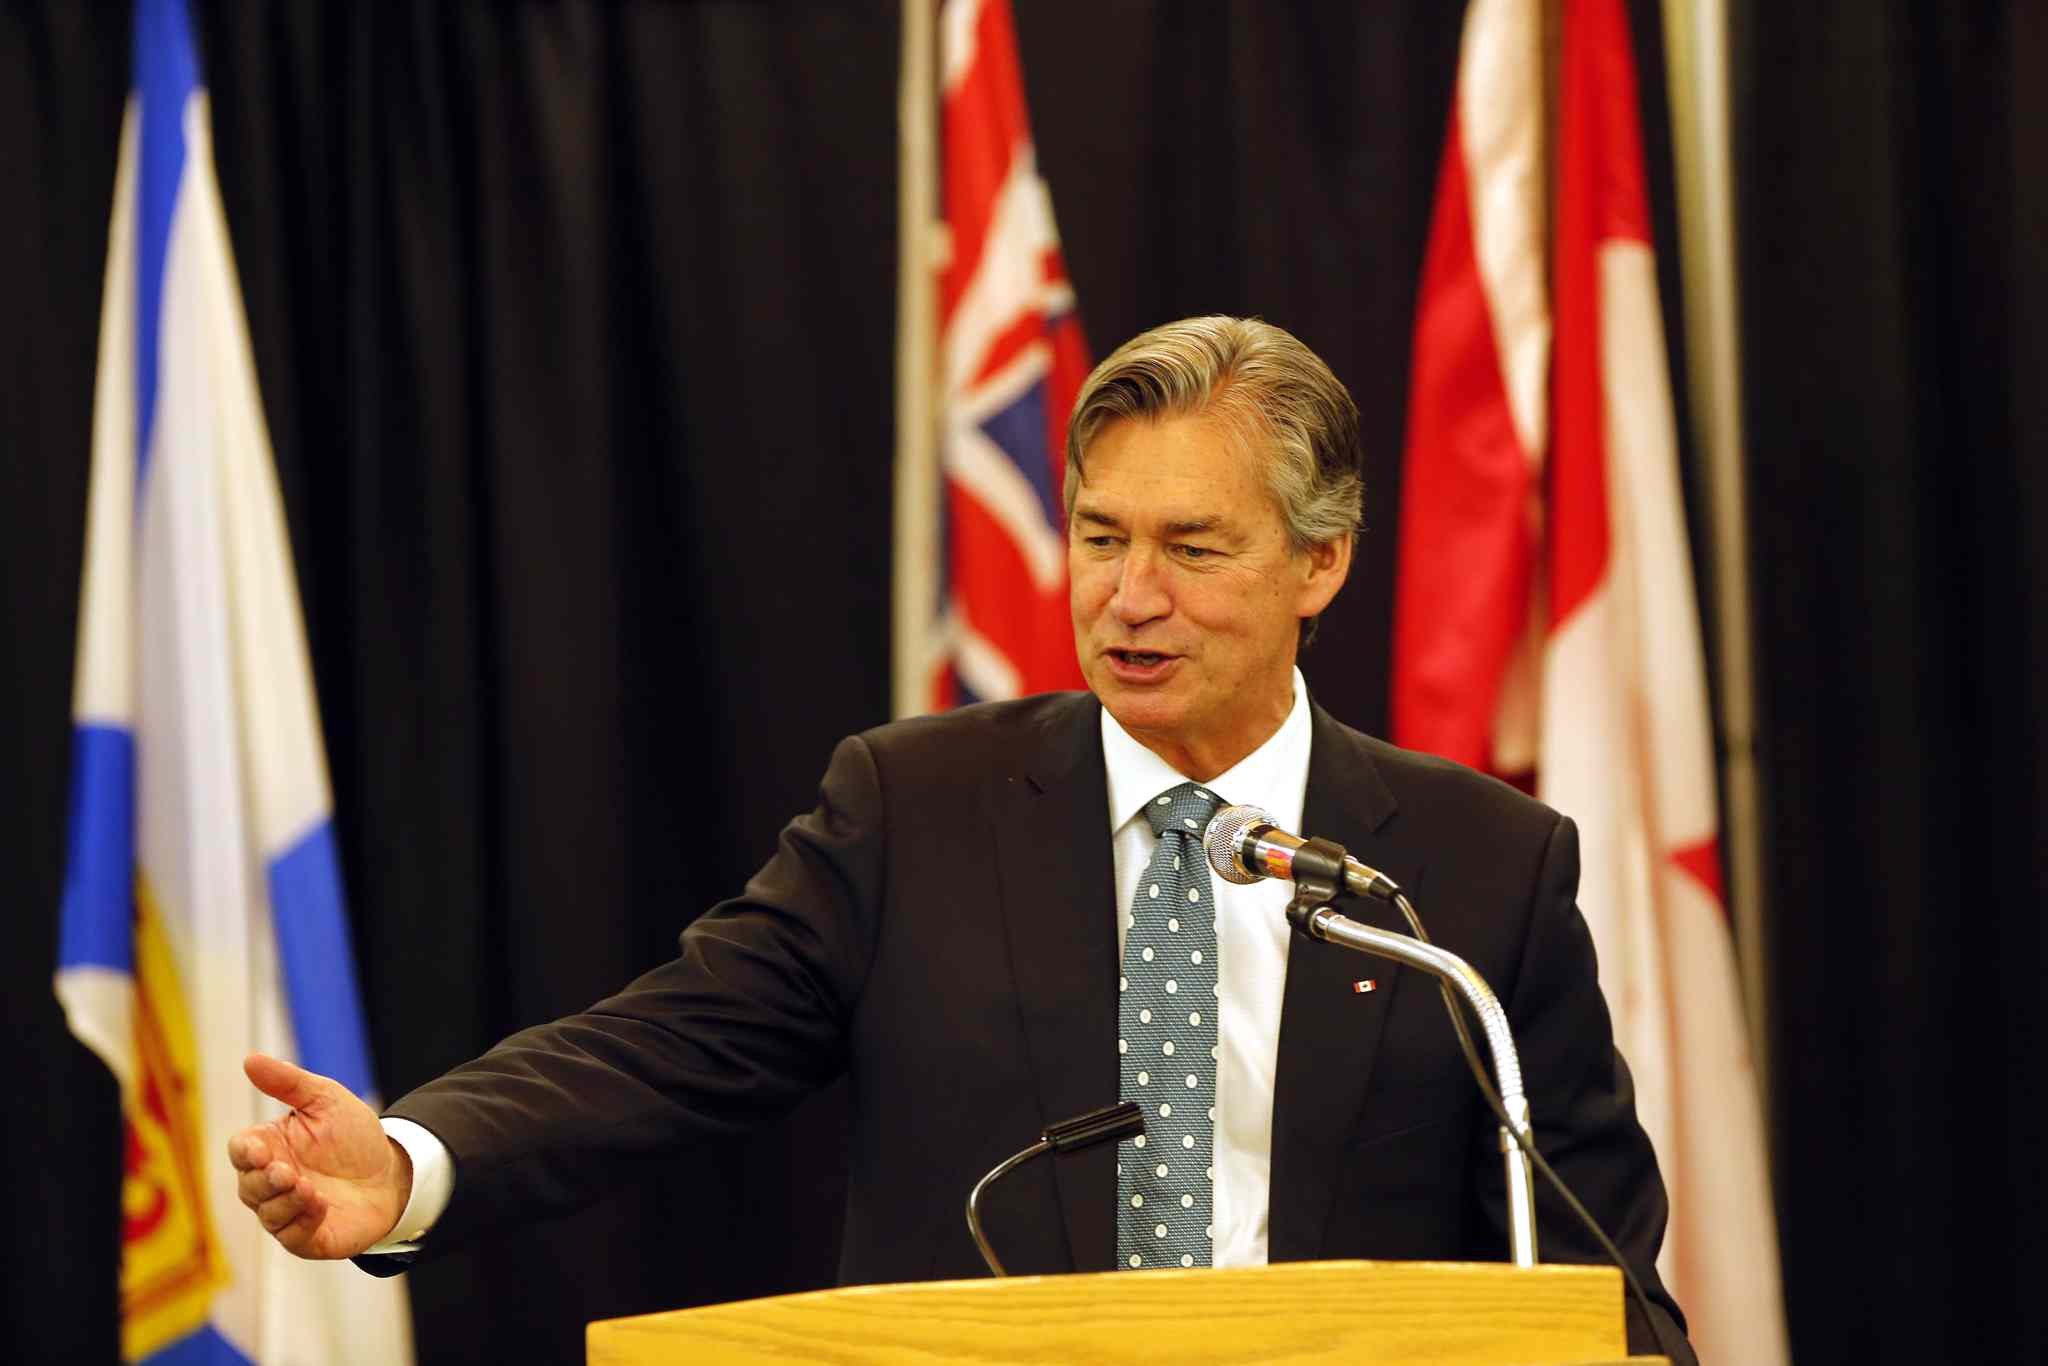 Gary Doer says there is no discrepancy between his support of Keystone and his record on environmental issues.